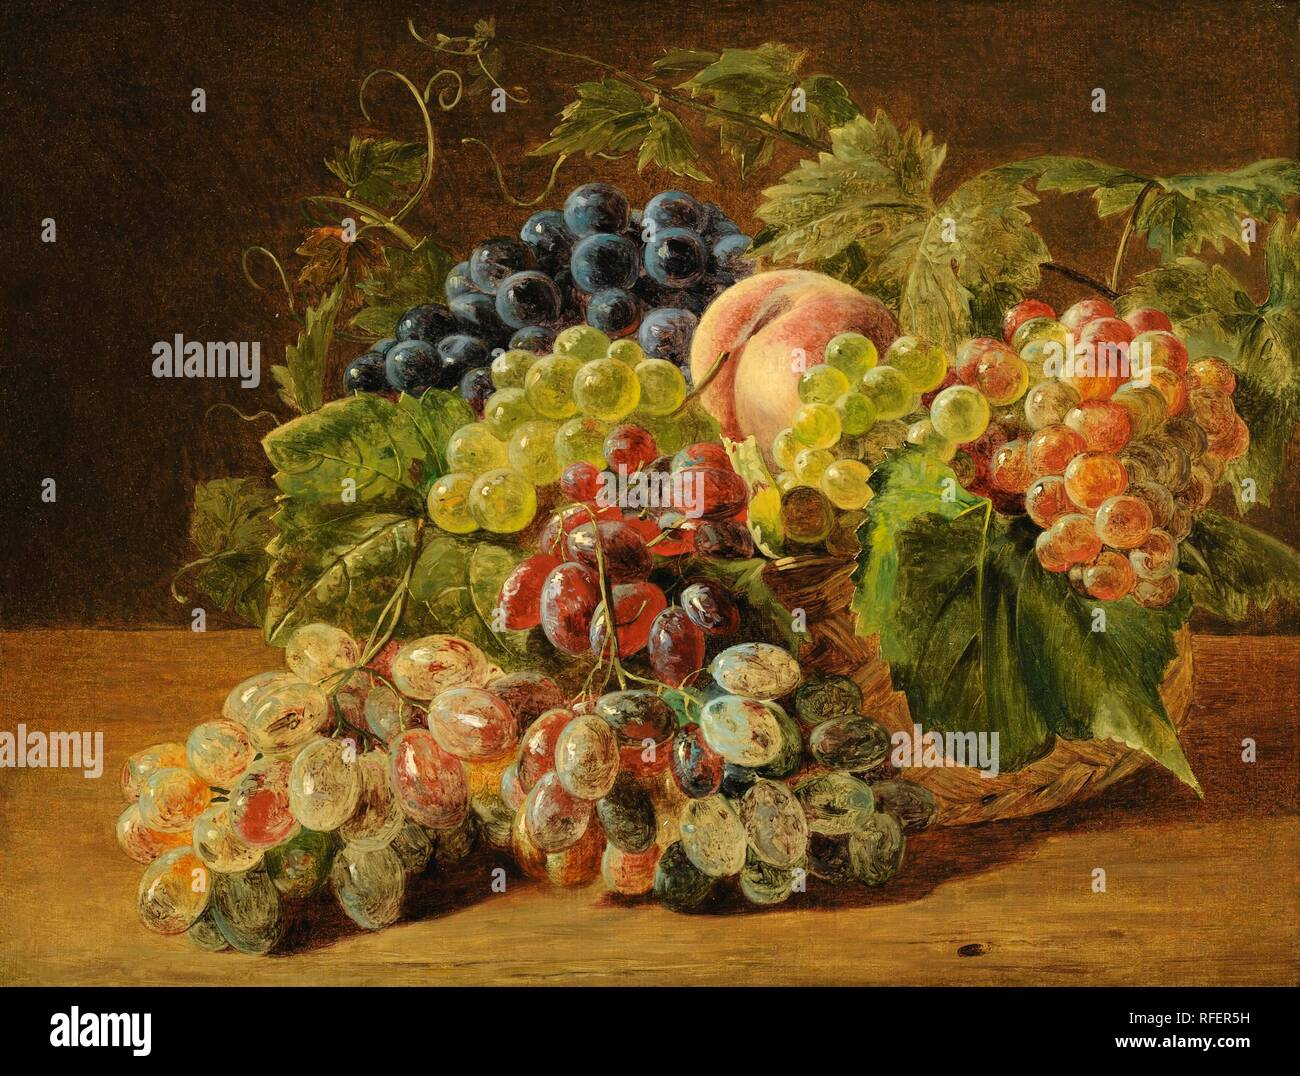 Ferdinand Georg Waldmller VIENNE 1793 - 1865 STILL LIFE WITH PEACHES AND GRAPES.jpg - RFER5H  - Stock Image